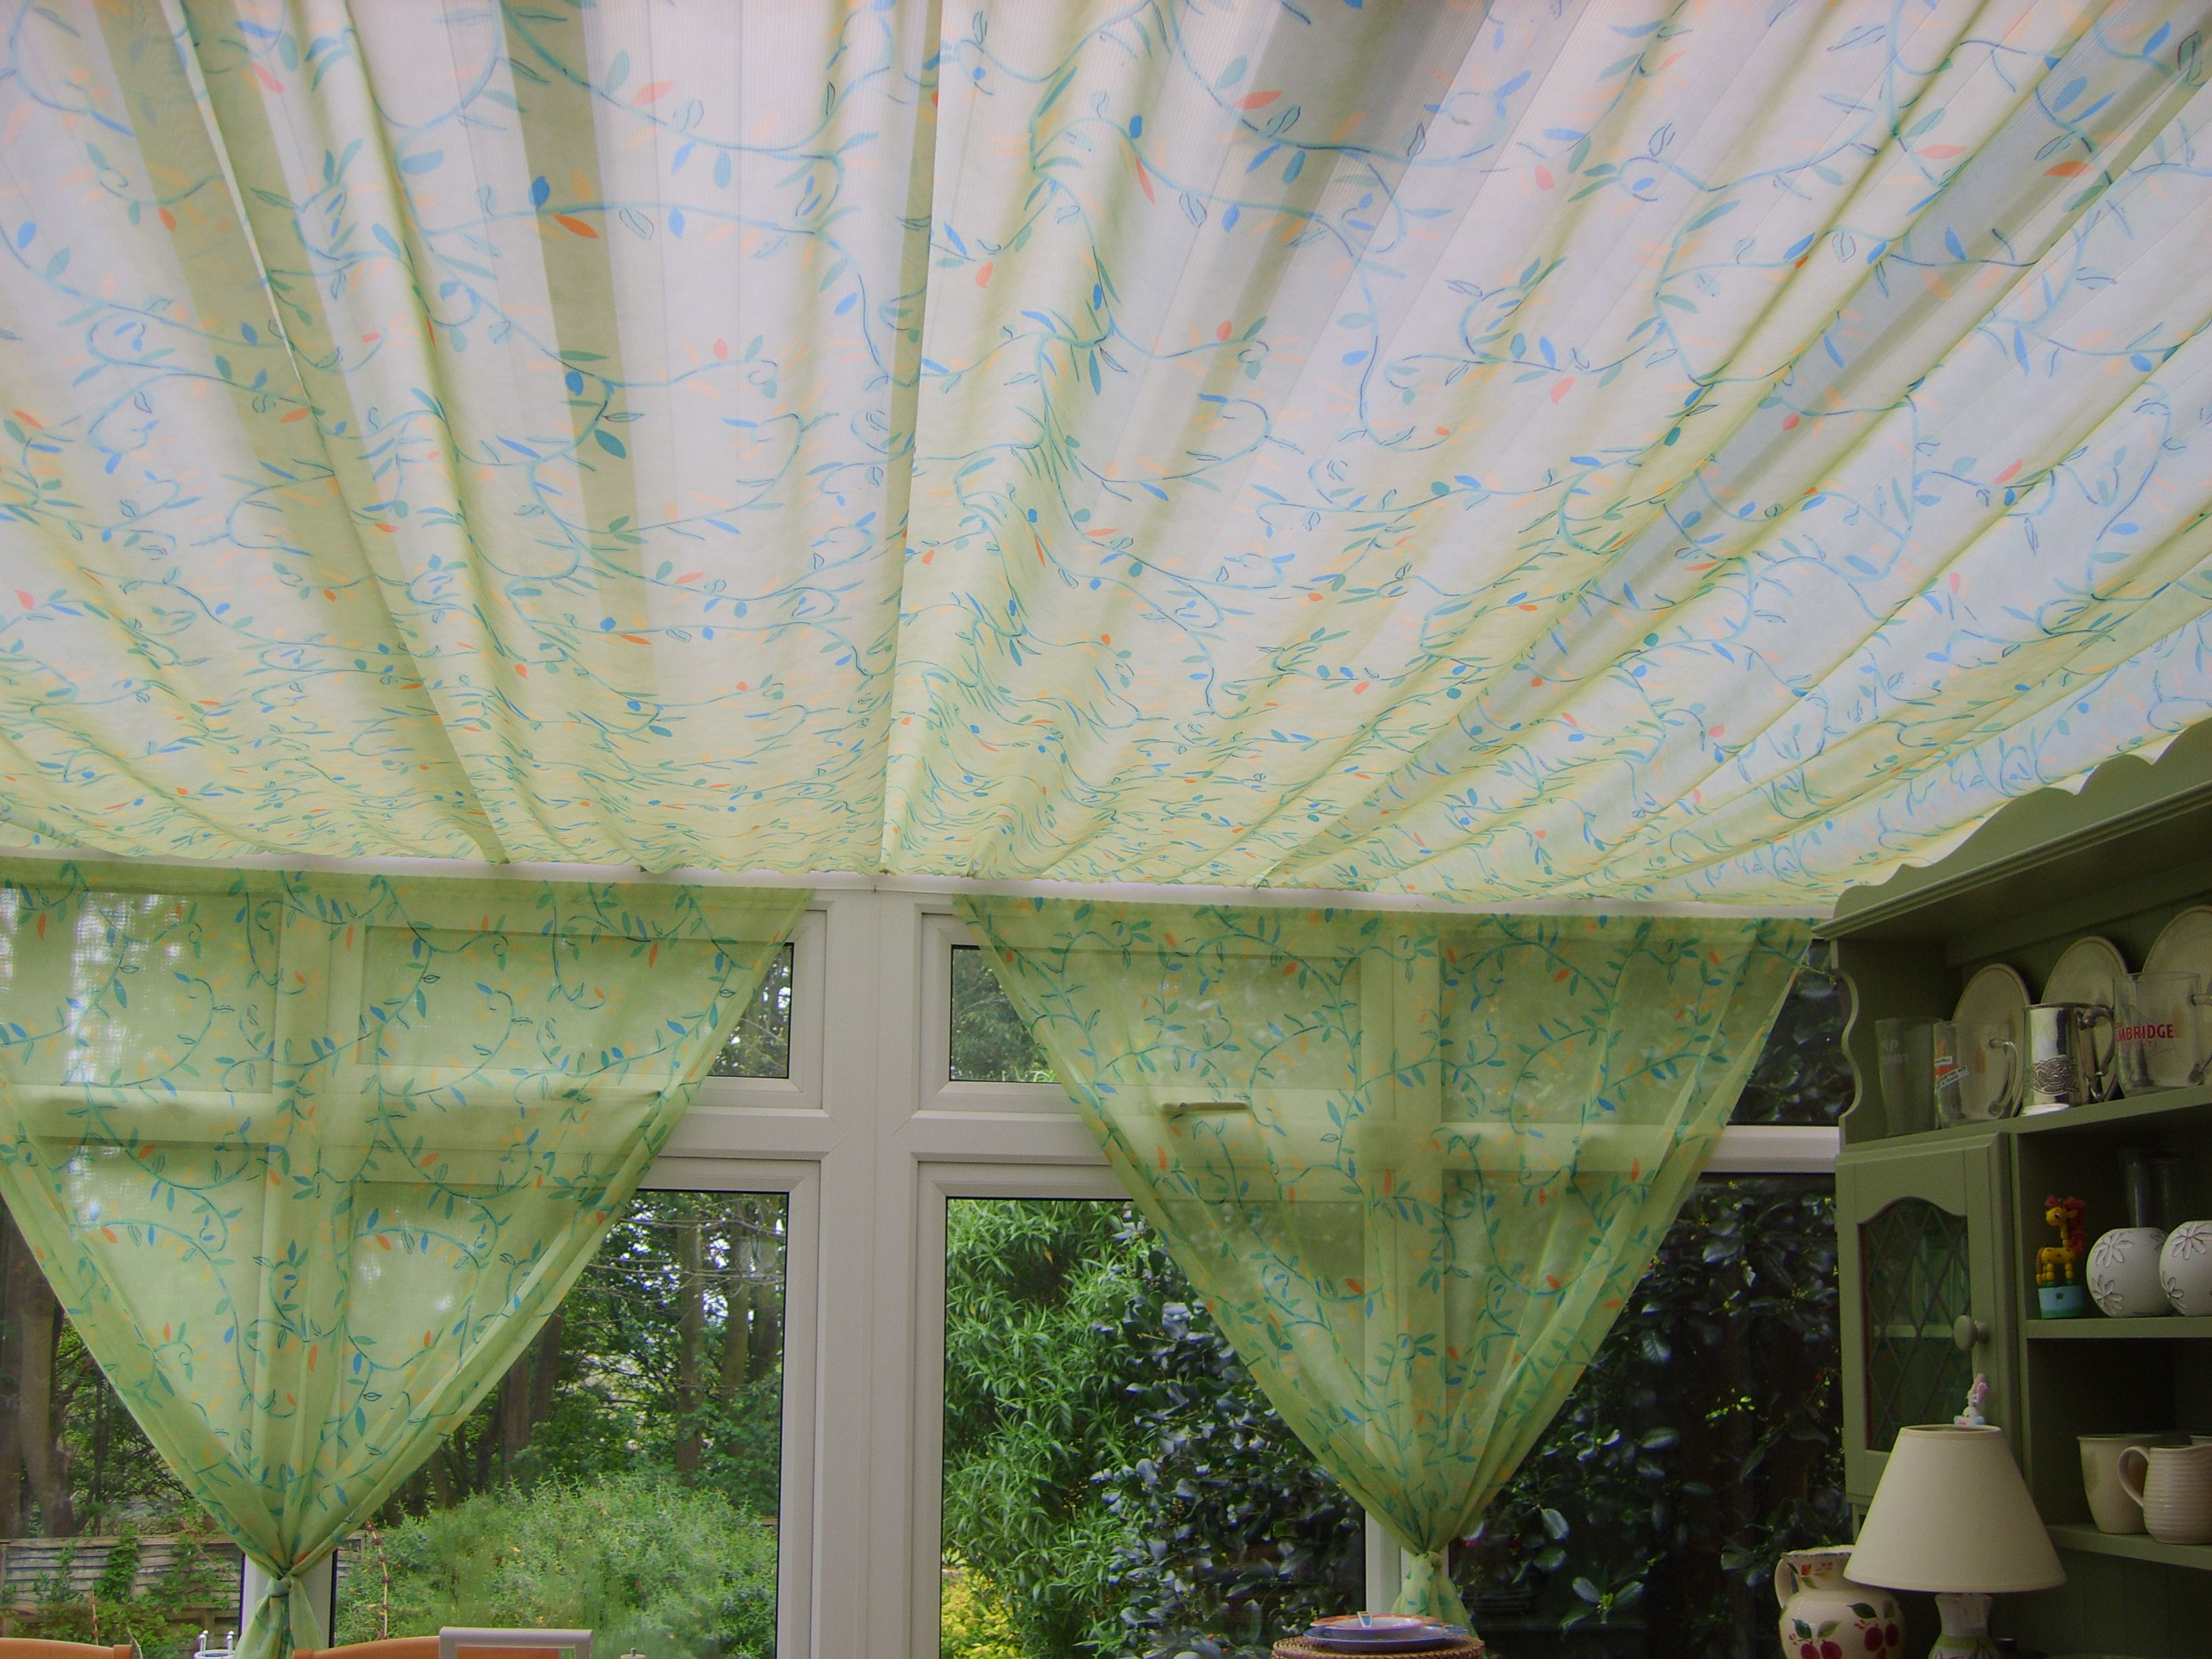 Phew Overheating Conservatory Moneysavingexpert Com Forums Conservatory Decor Conservatory Roof Blinds Conservatory Roof